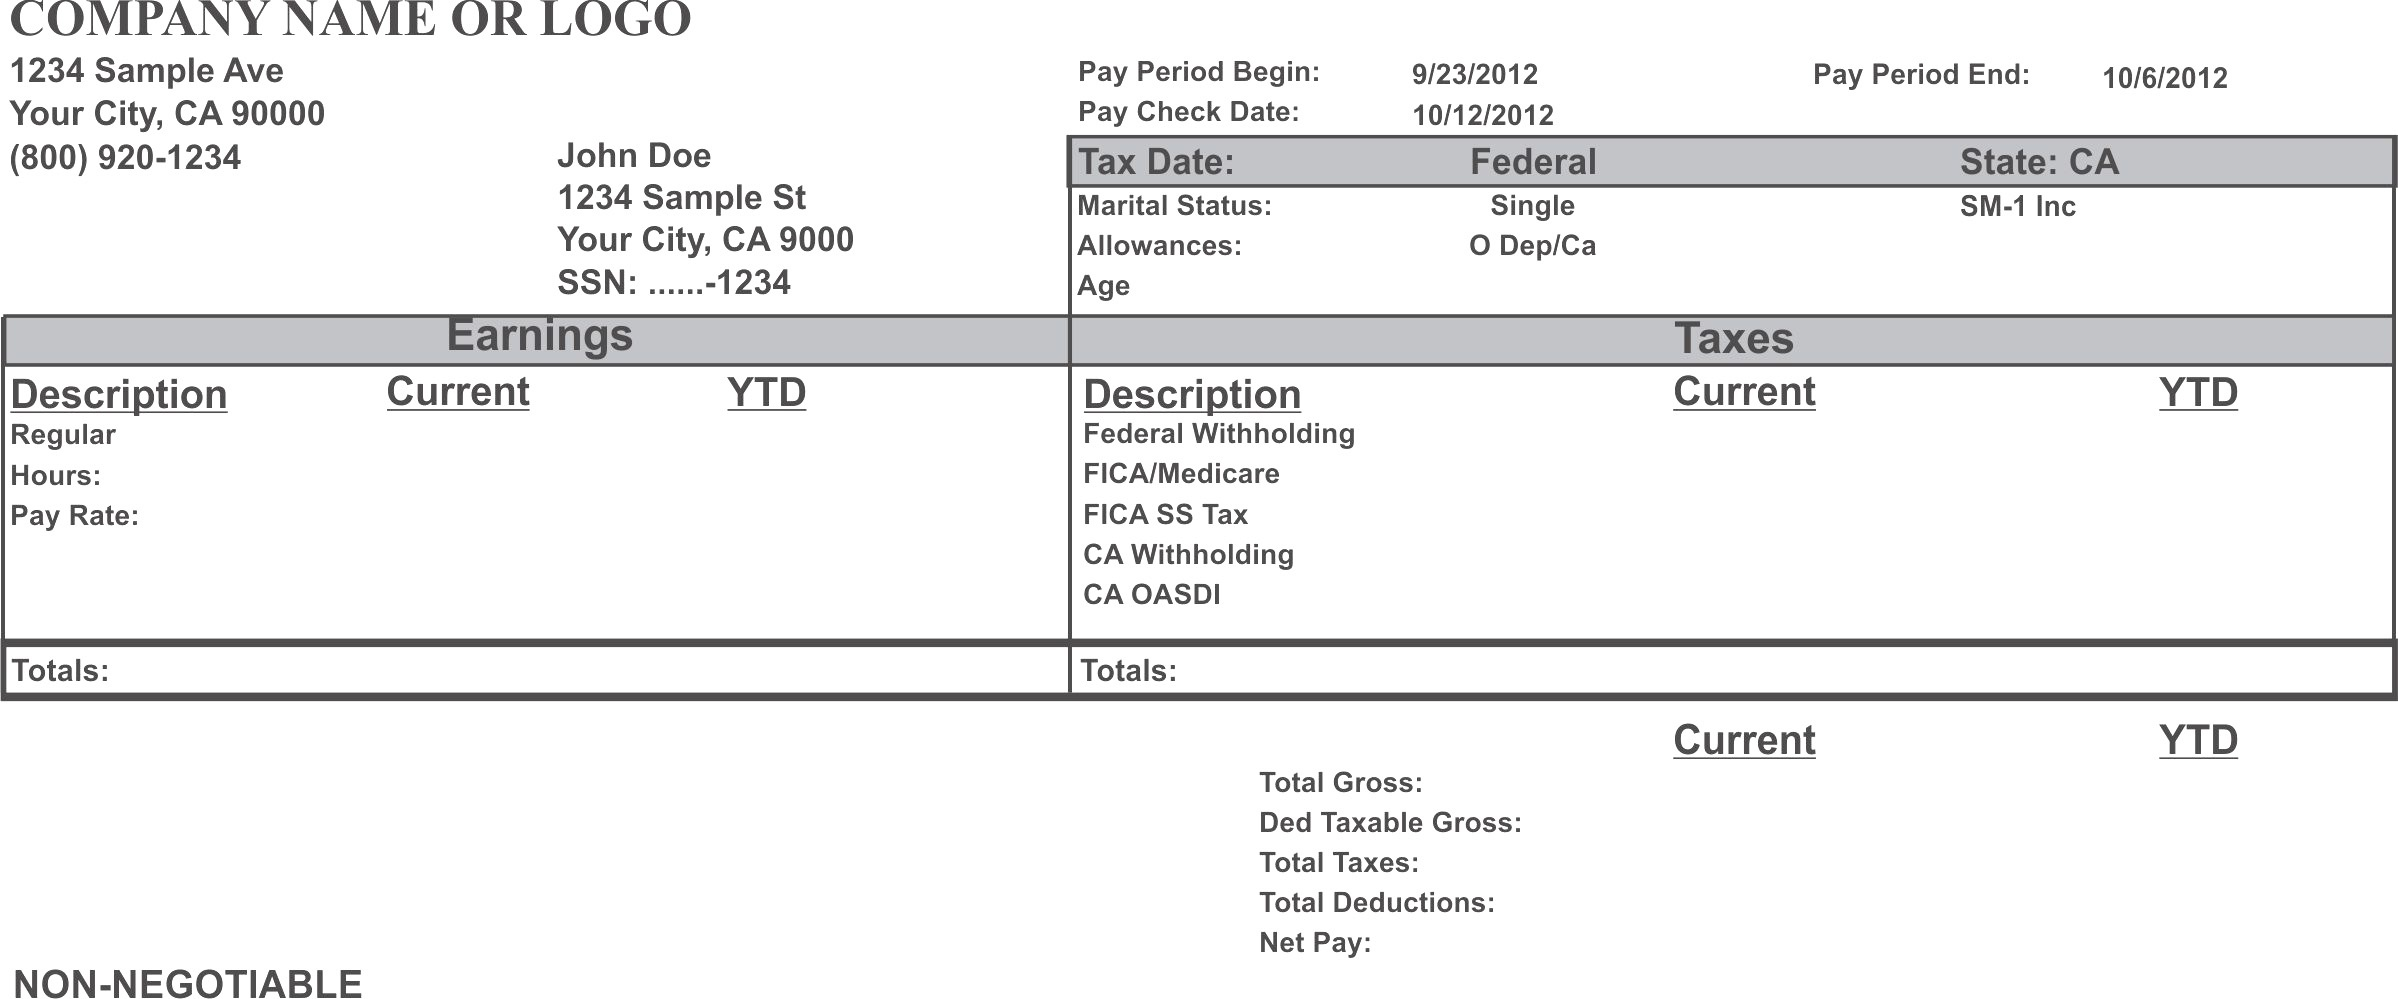 Adp Pay Stub Template Free - Free Printable Pay Stubs Online